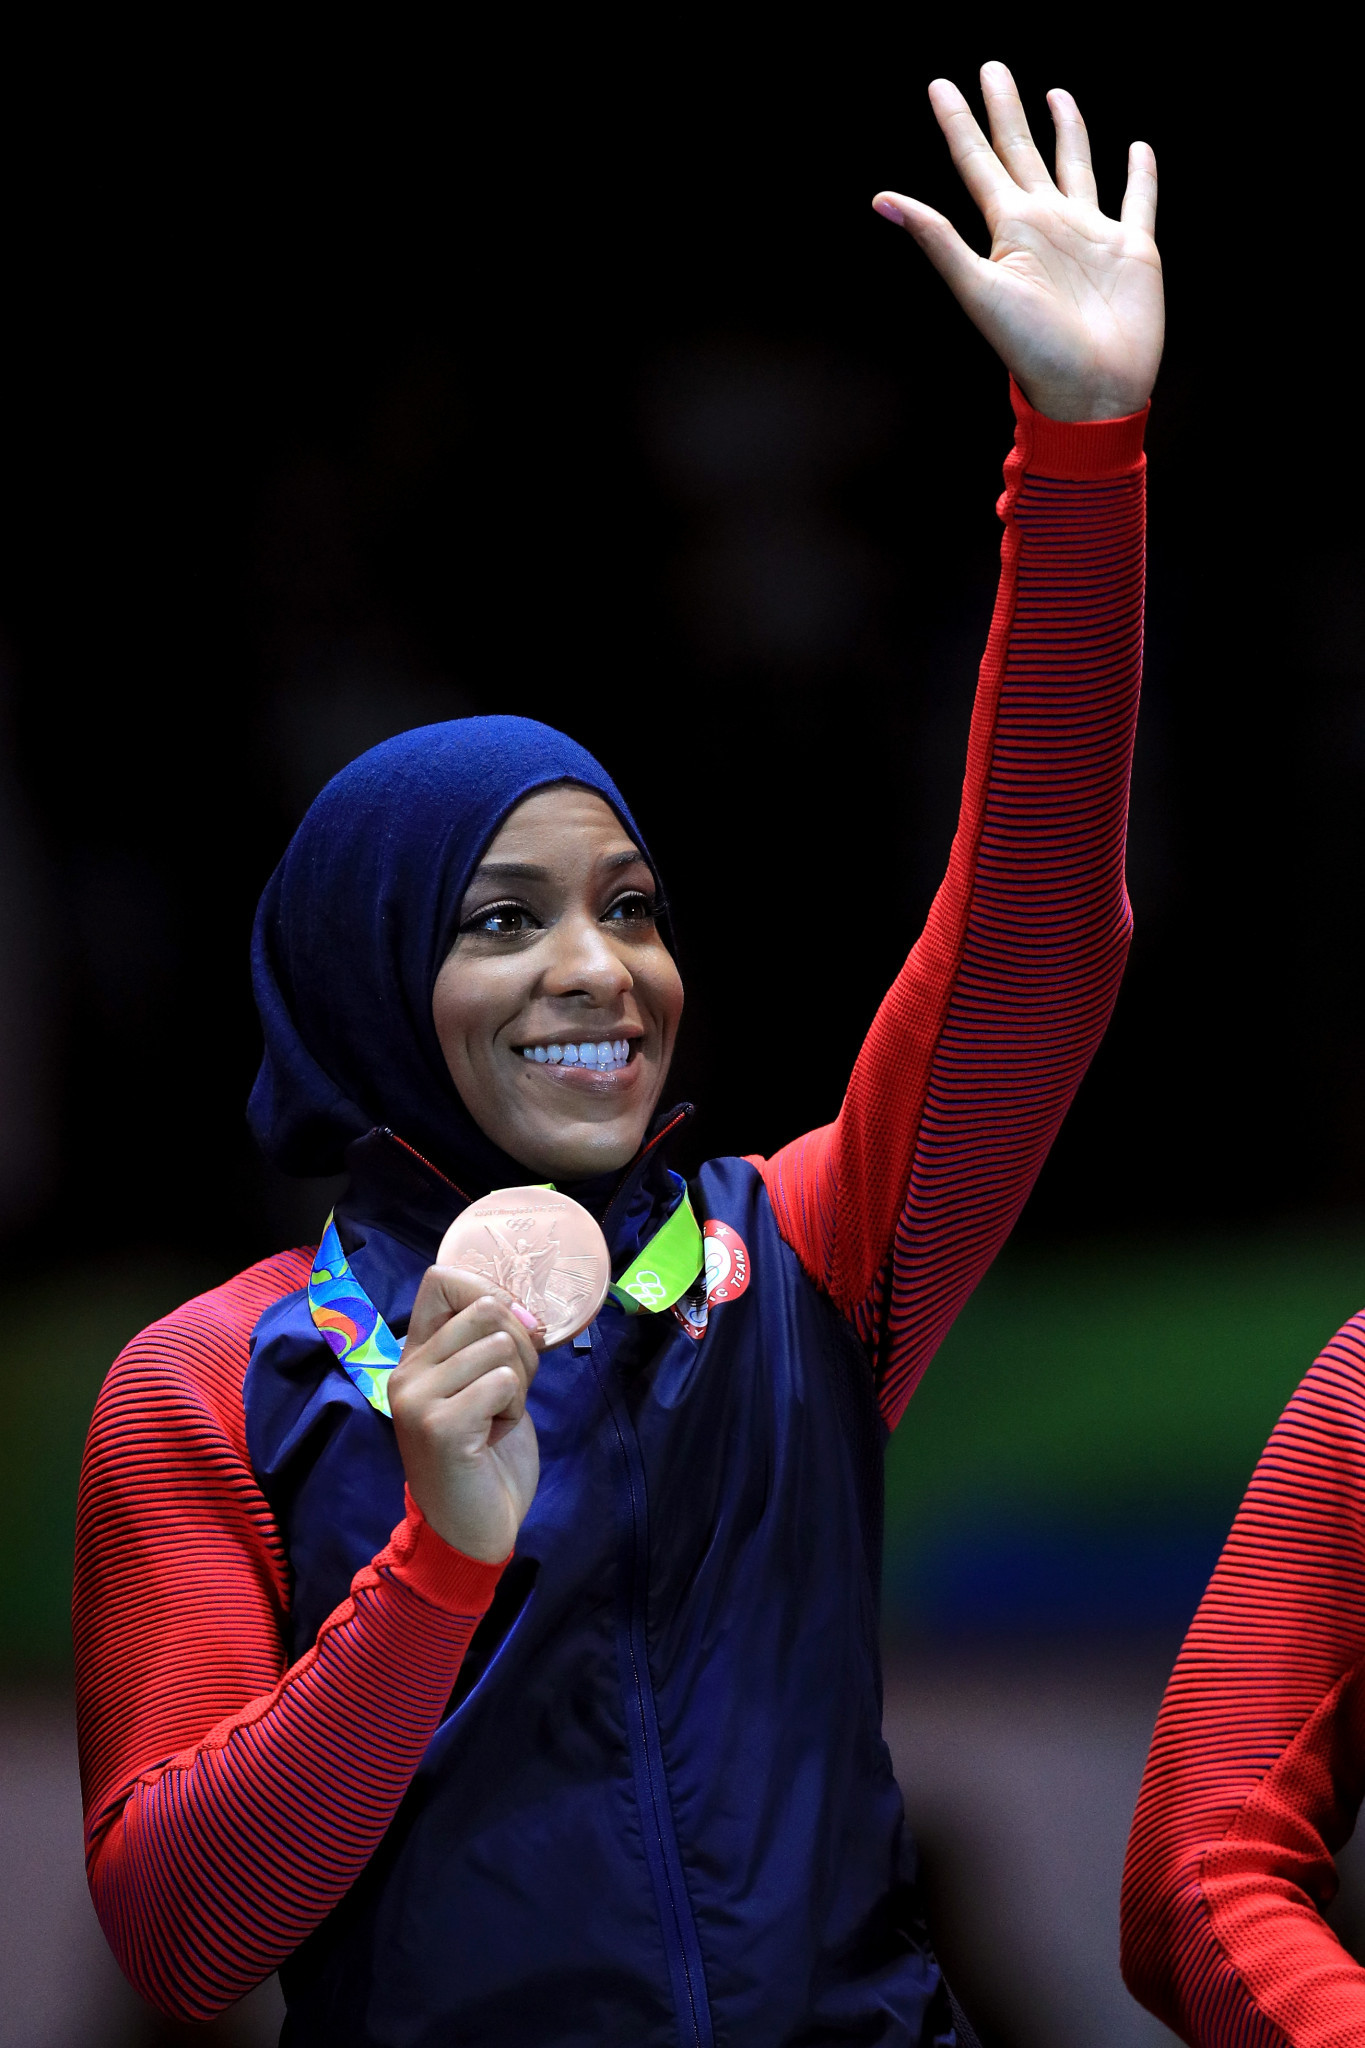 At Rio 2016, fencer Ibtihaj Muhammad became the first Muslim-American woman to win an Olympic medal, competing in a hijab as she was part of the squad that took the bronze in the team sabre event ©Getty Images